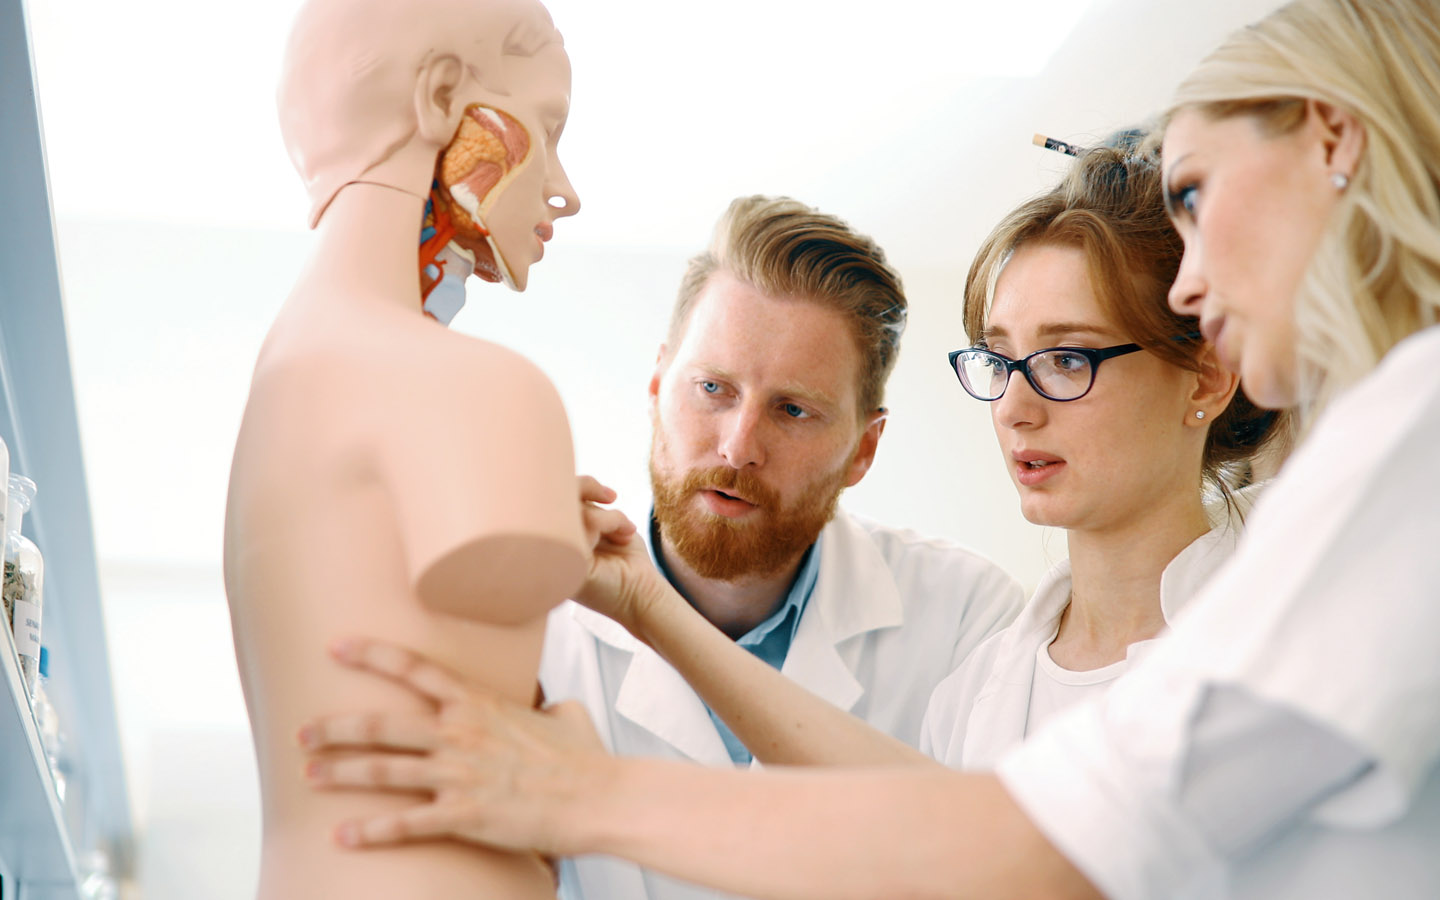 Anatomy students studying an artficial body